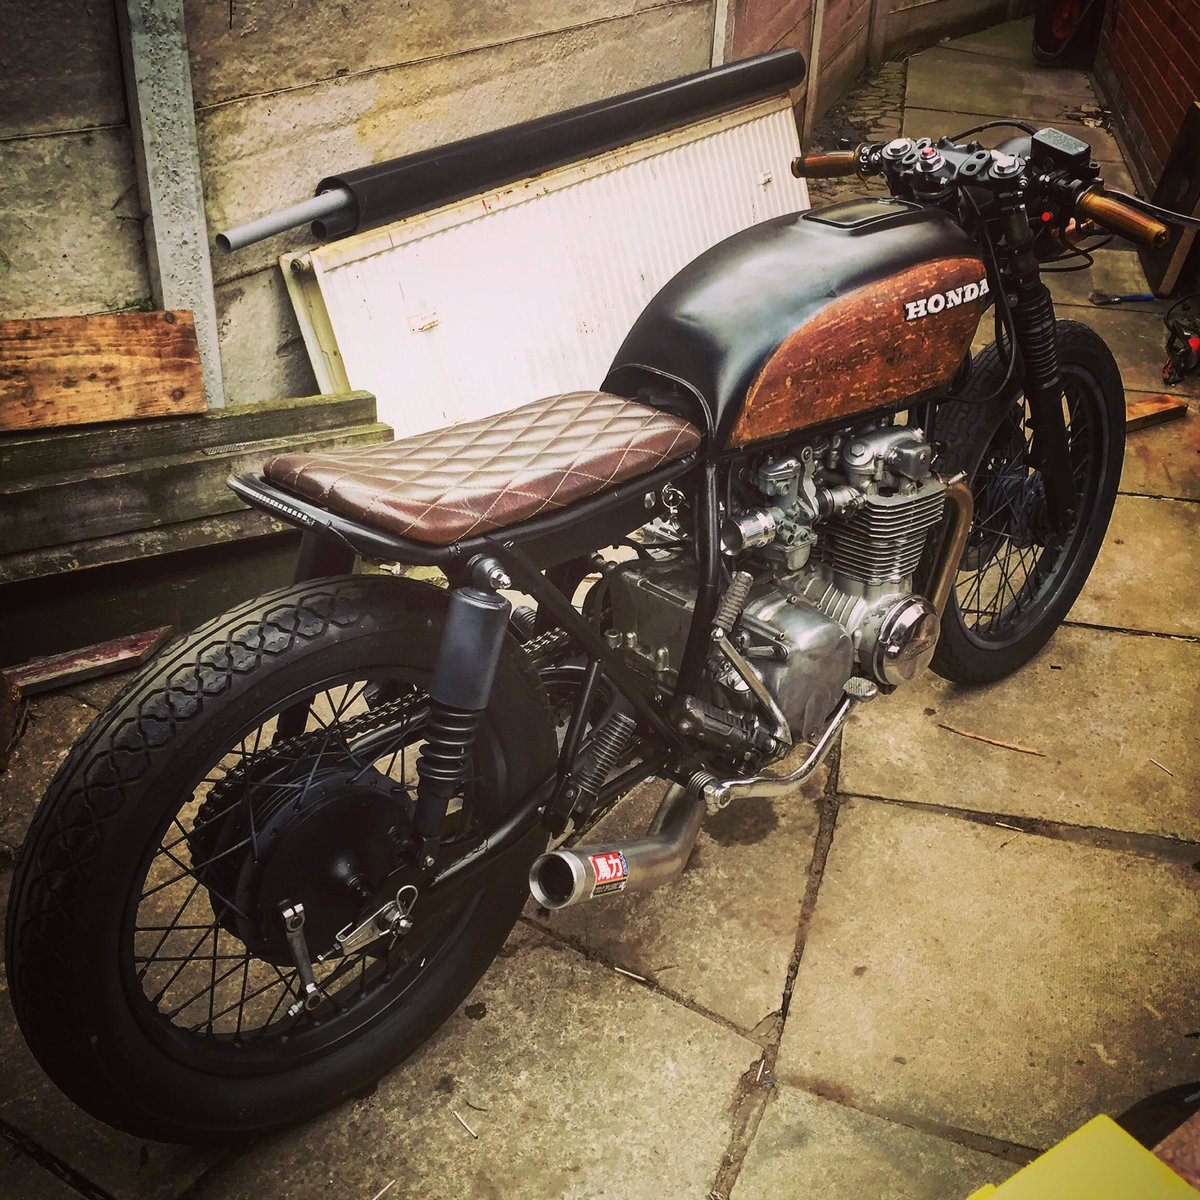 "Misdemeanor Customs on Twitter: ""My first build was a 1976 #Honda #cb550F what yall think?? #cafe #caferacer #bratstyle #cb550 @caferacerbrat… """